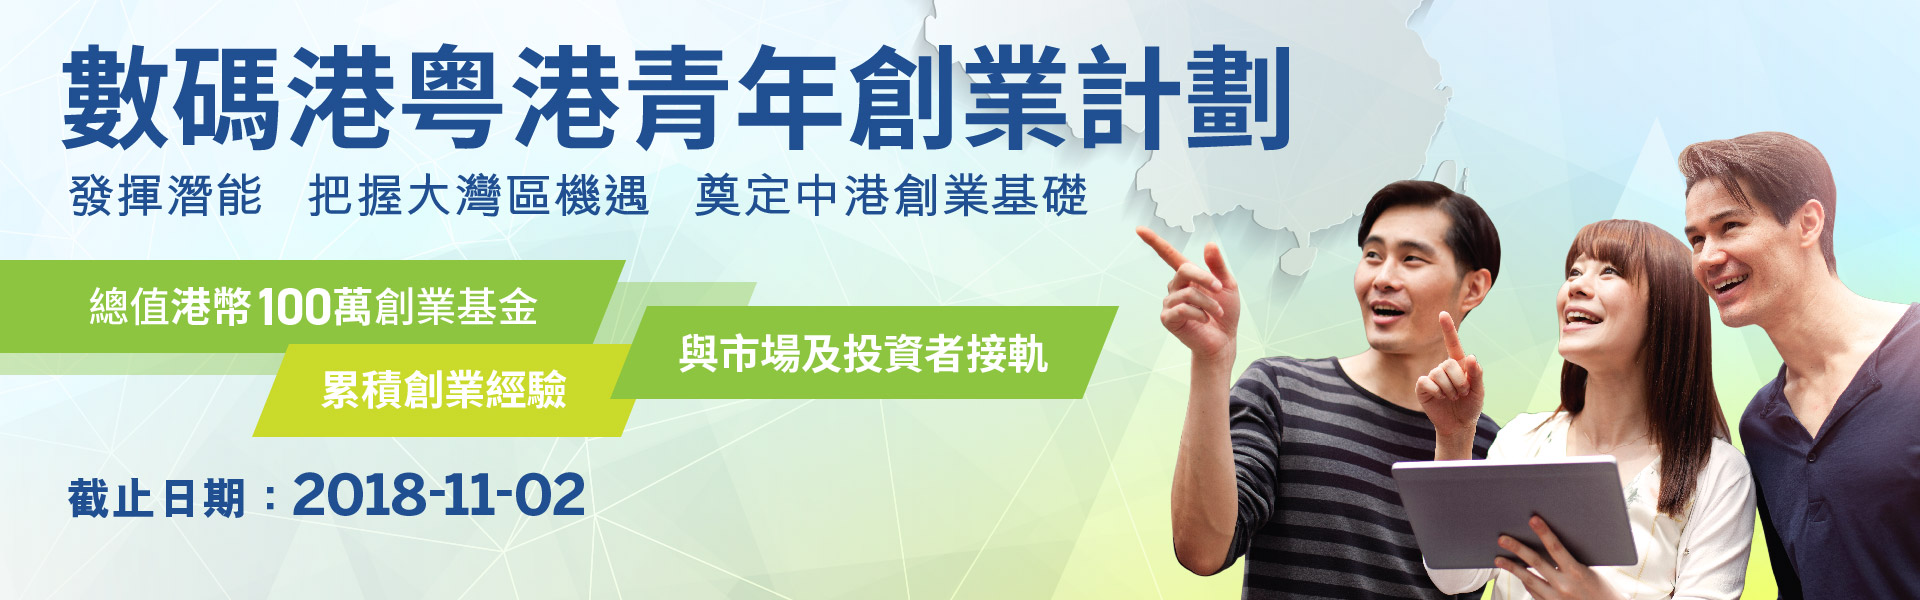 Cyberport Guangdong-Hong Kong Young Entrepreneur Programme is now open for application